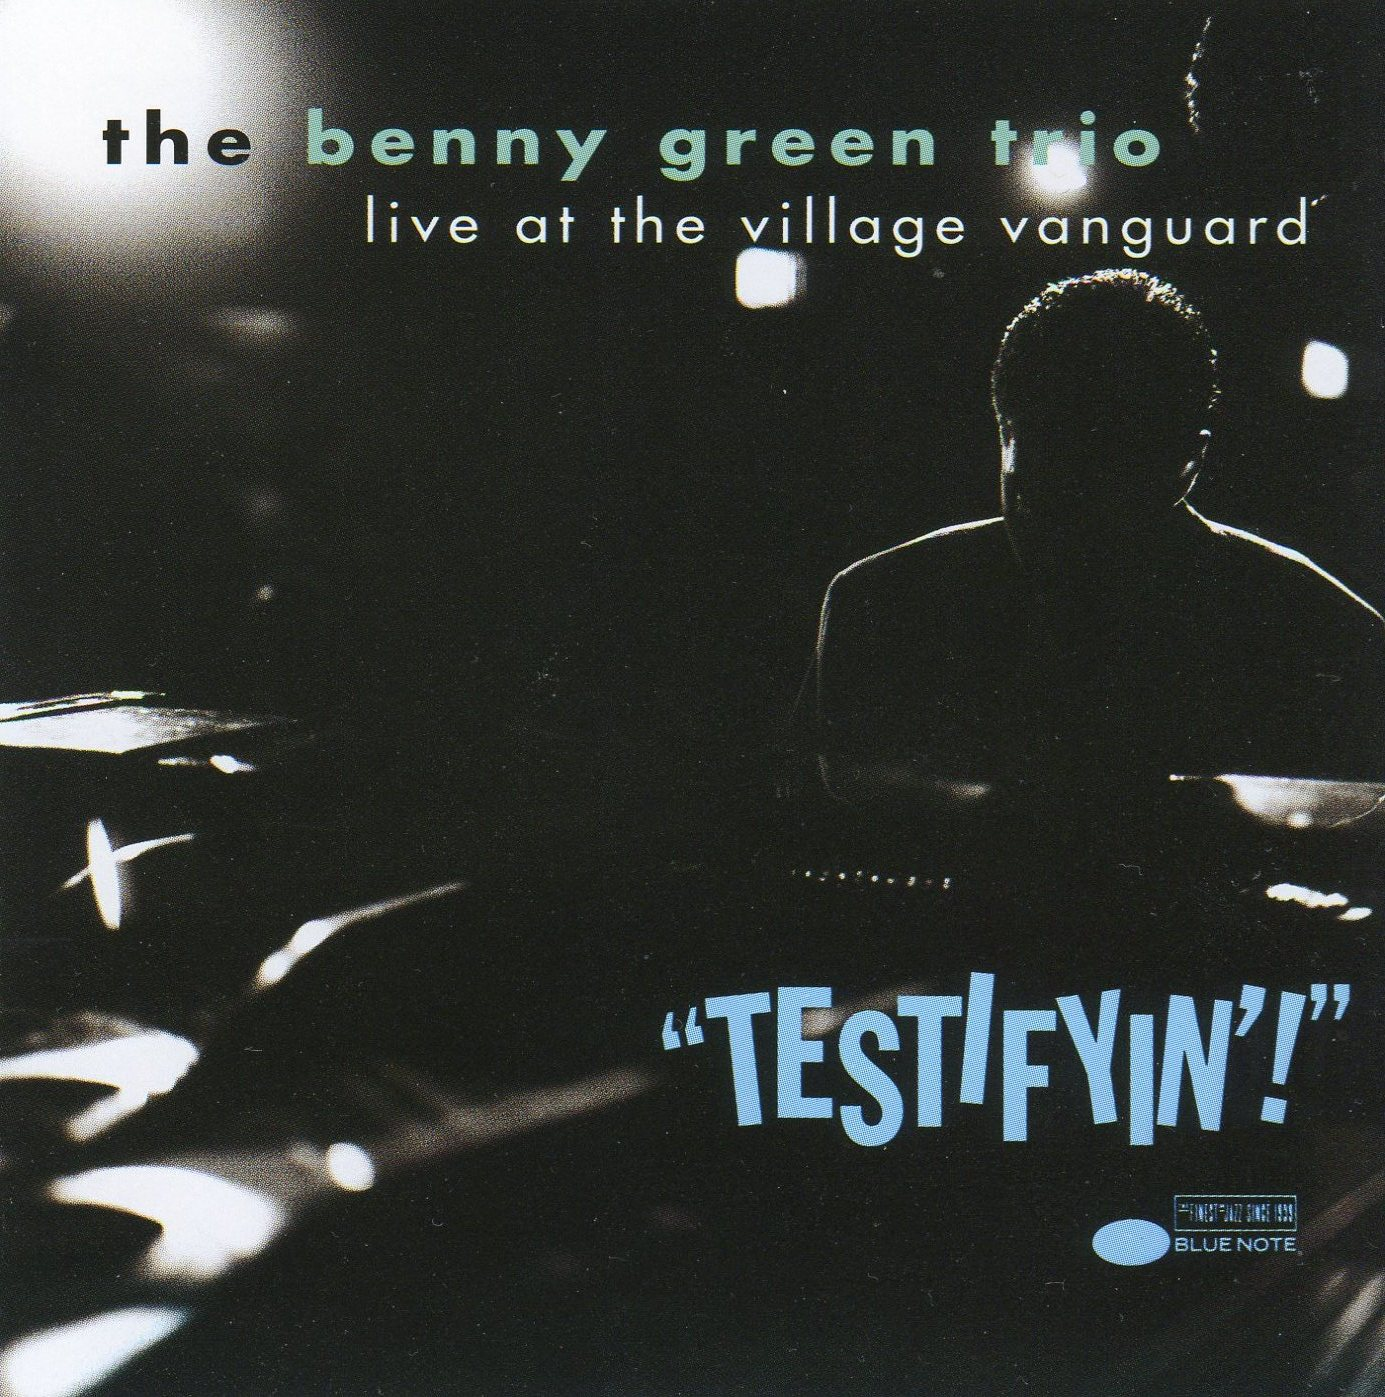 BENNY GREEN (PIANO) - Testifyin'!: Live at the Village Vanguard cover